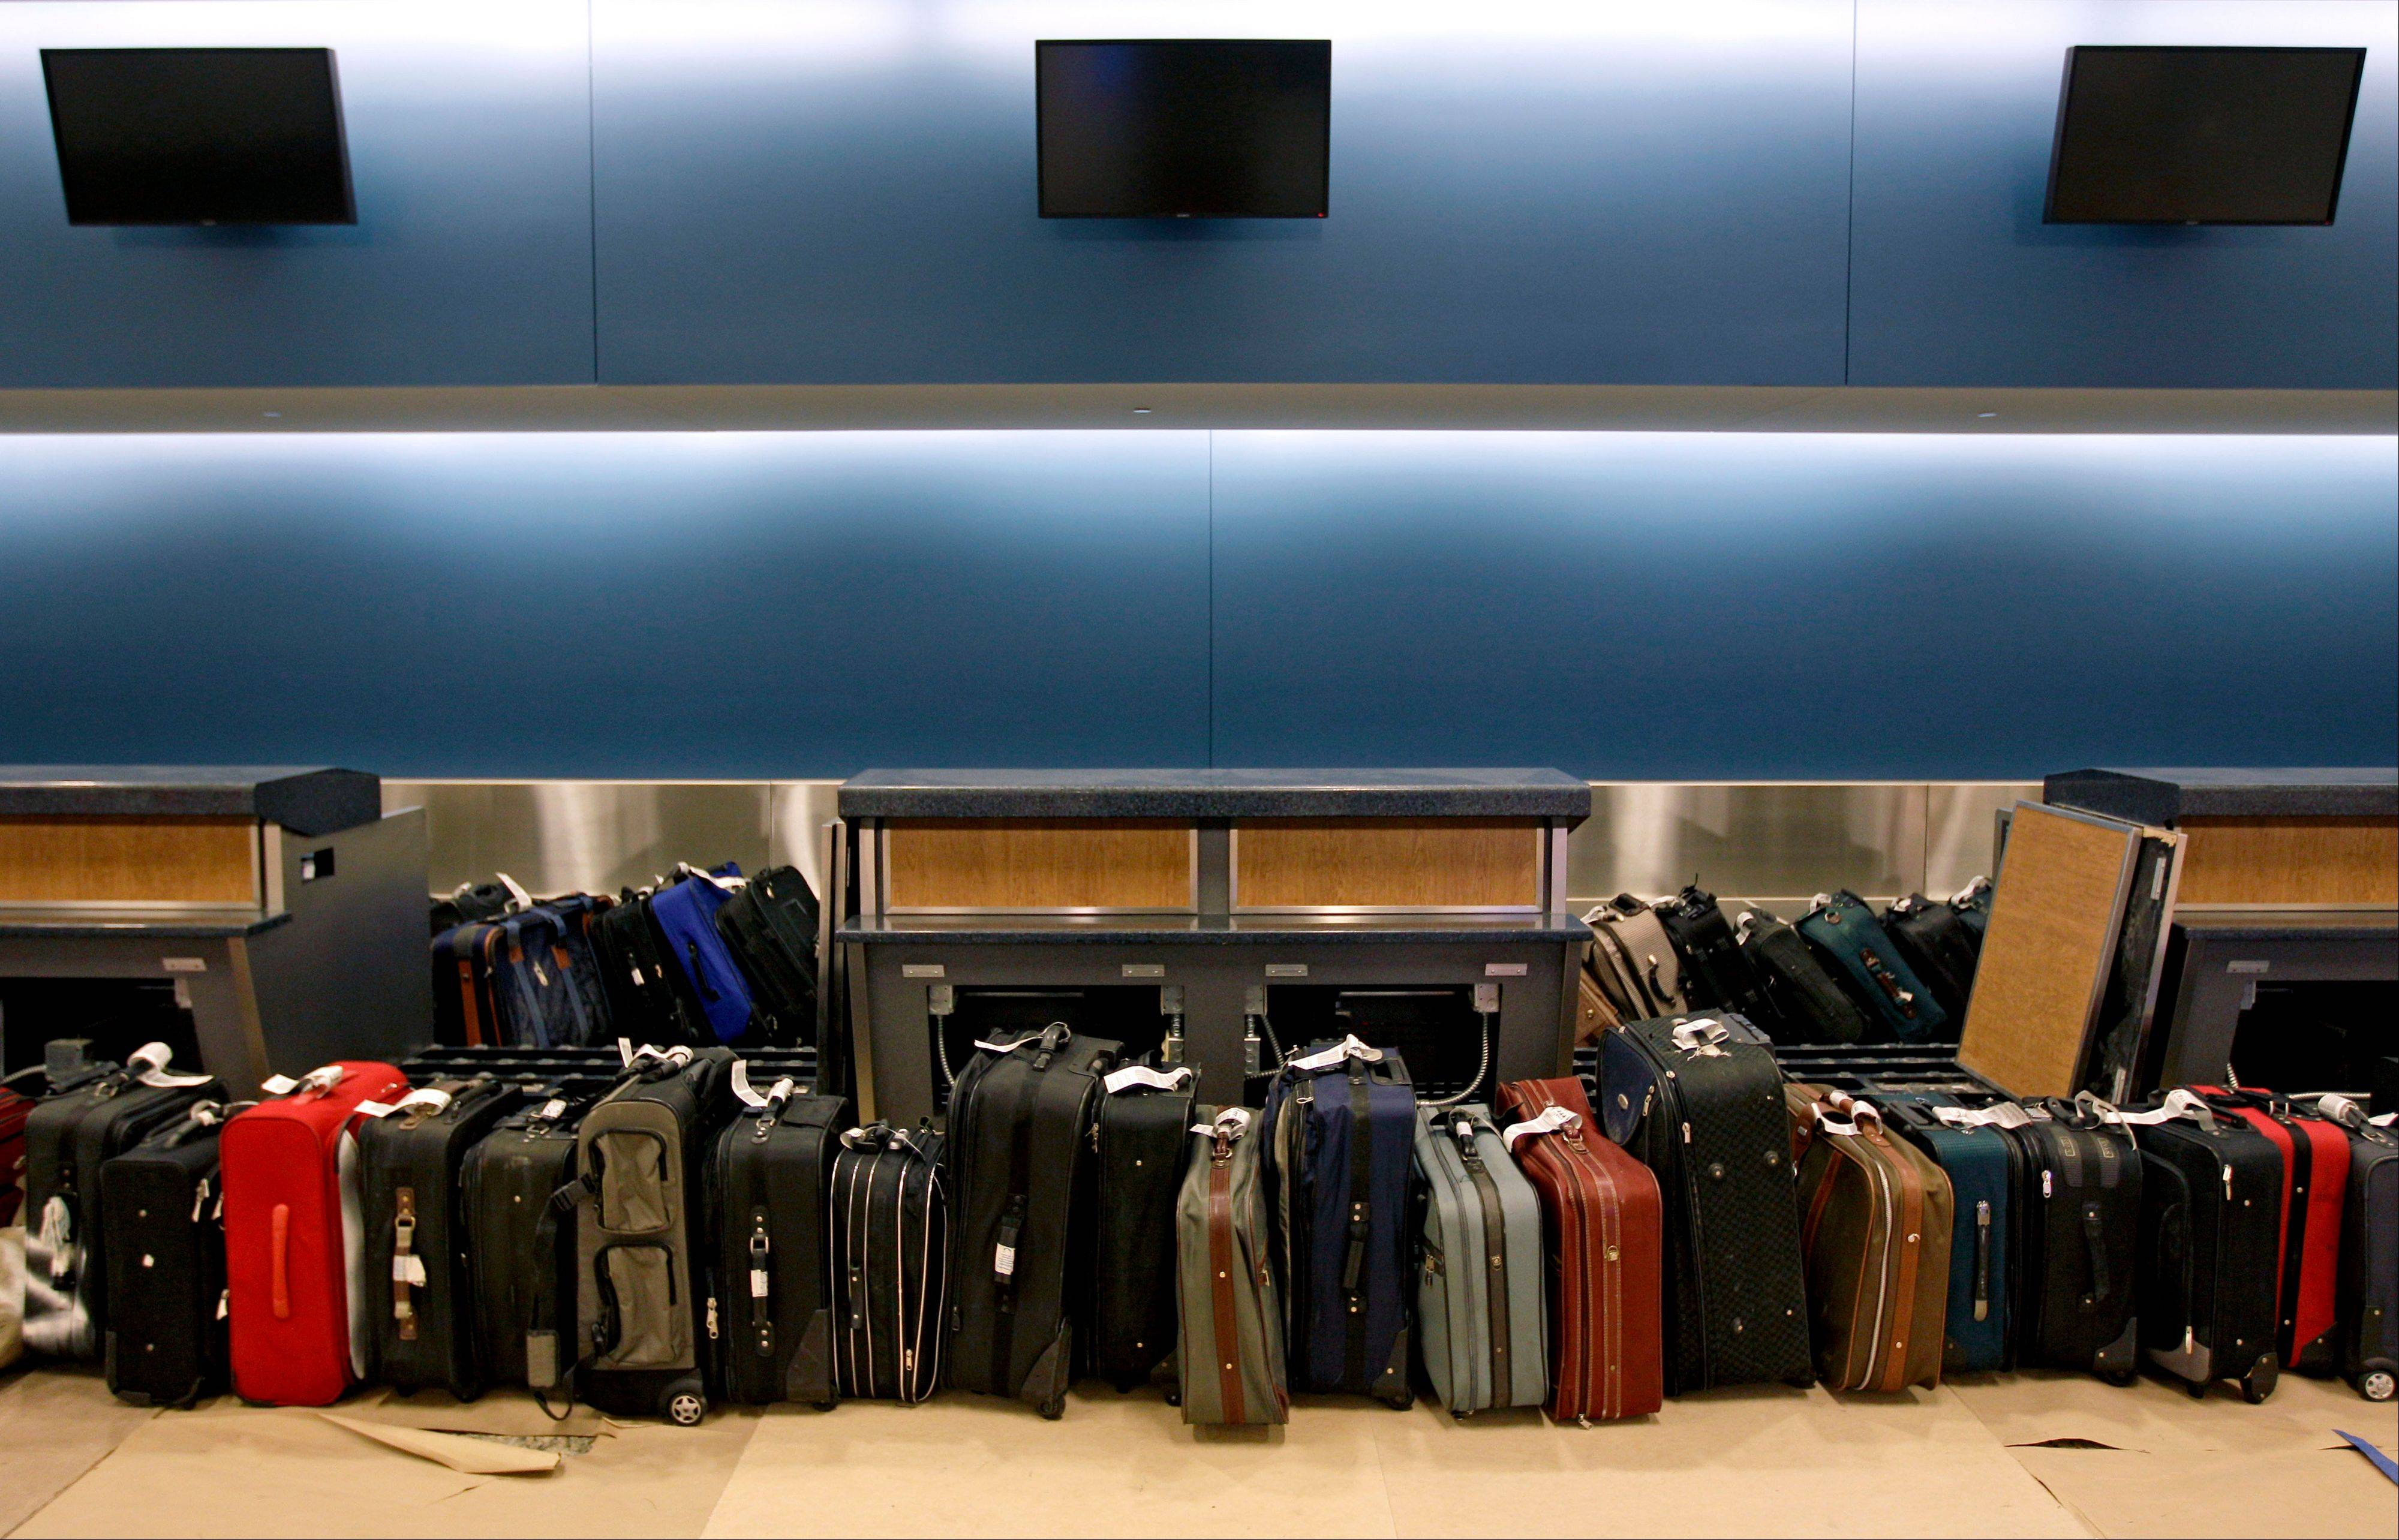 U.S. airlines collected more than $6 billion in baggage and reservation change fees from passengers in 2012, the highest amount since the fees became common five years ago.